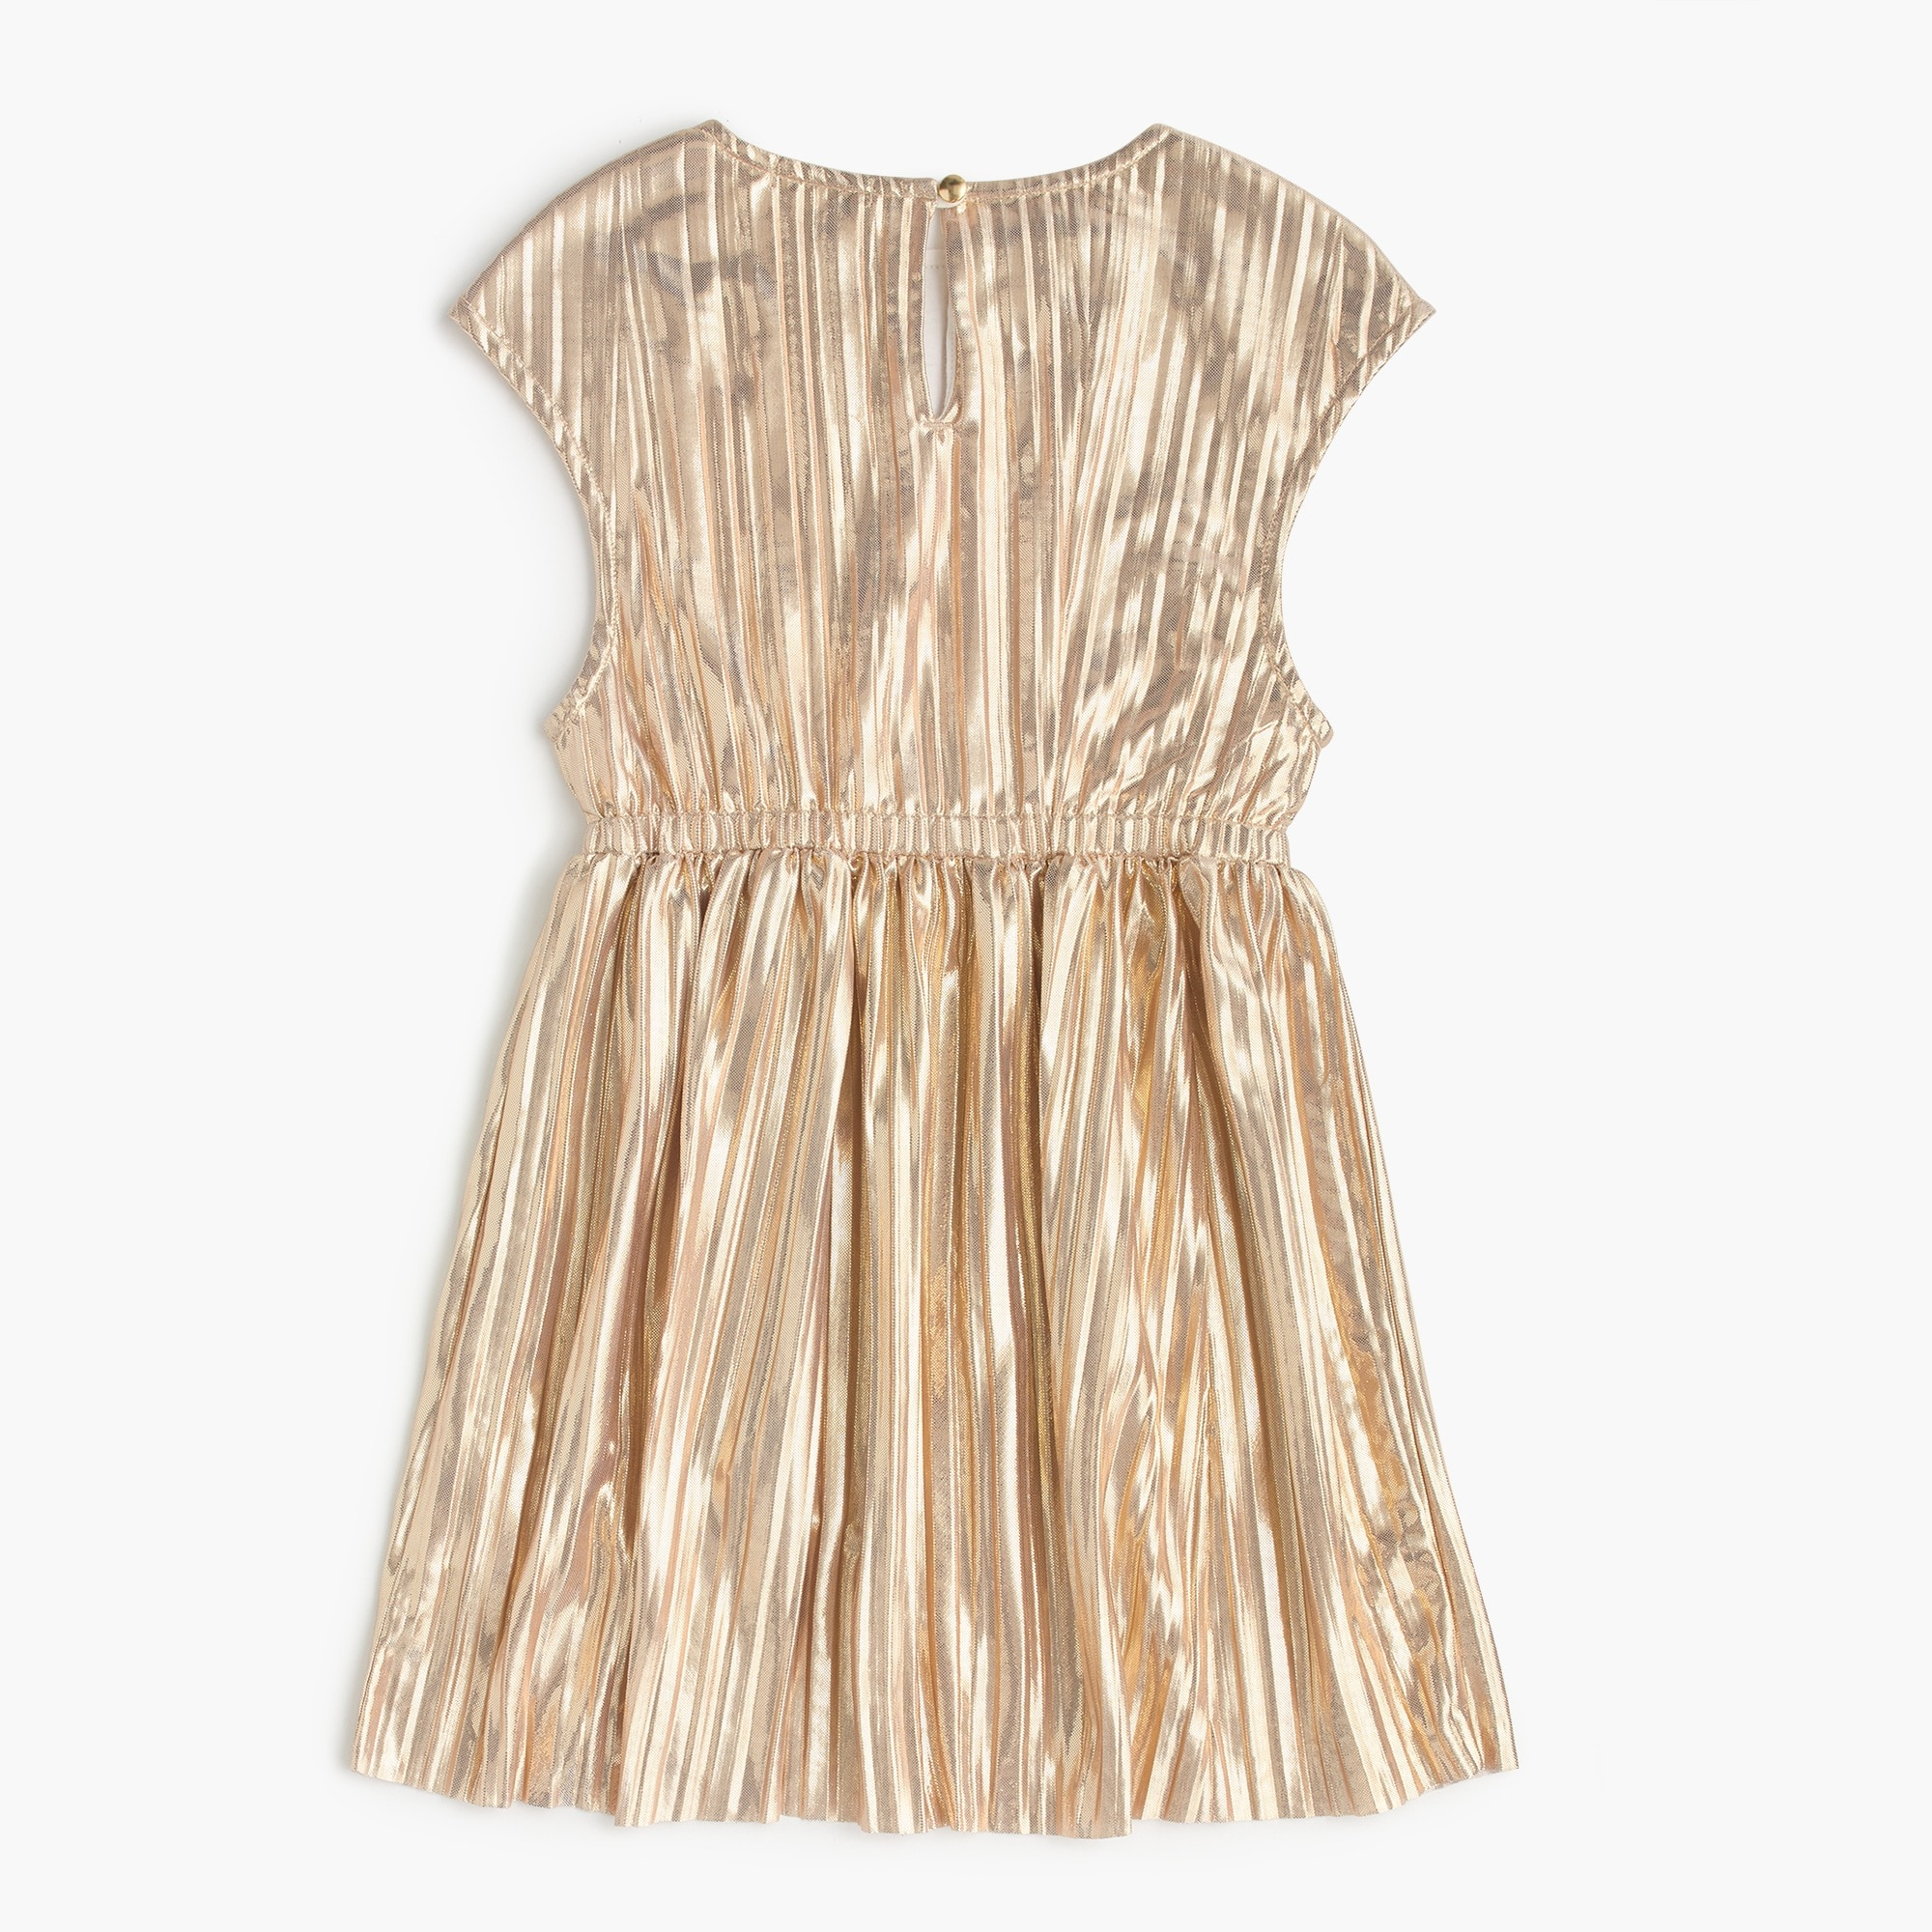 Girls' gold micropleat dress